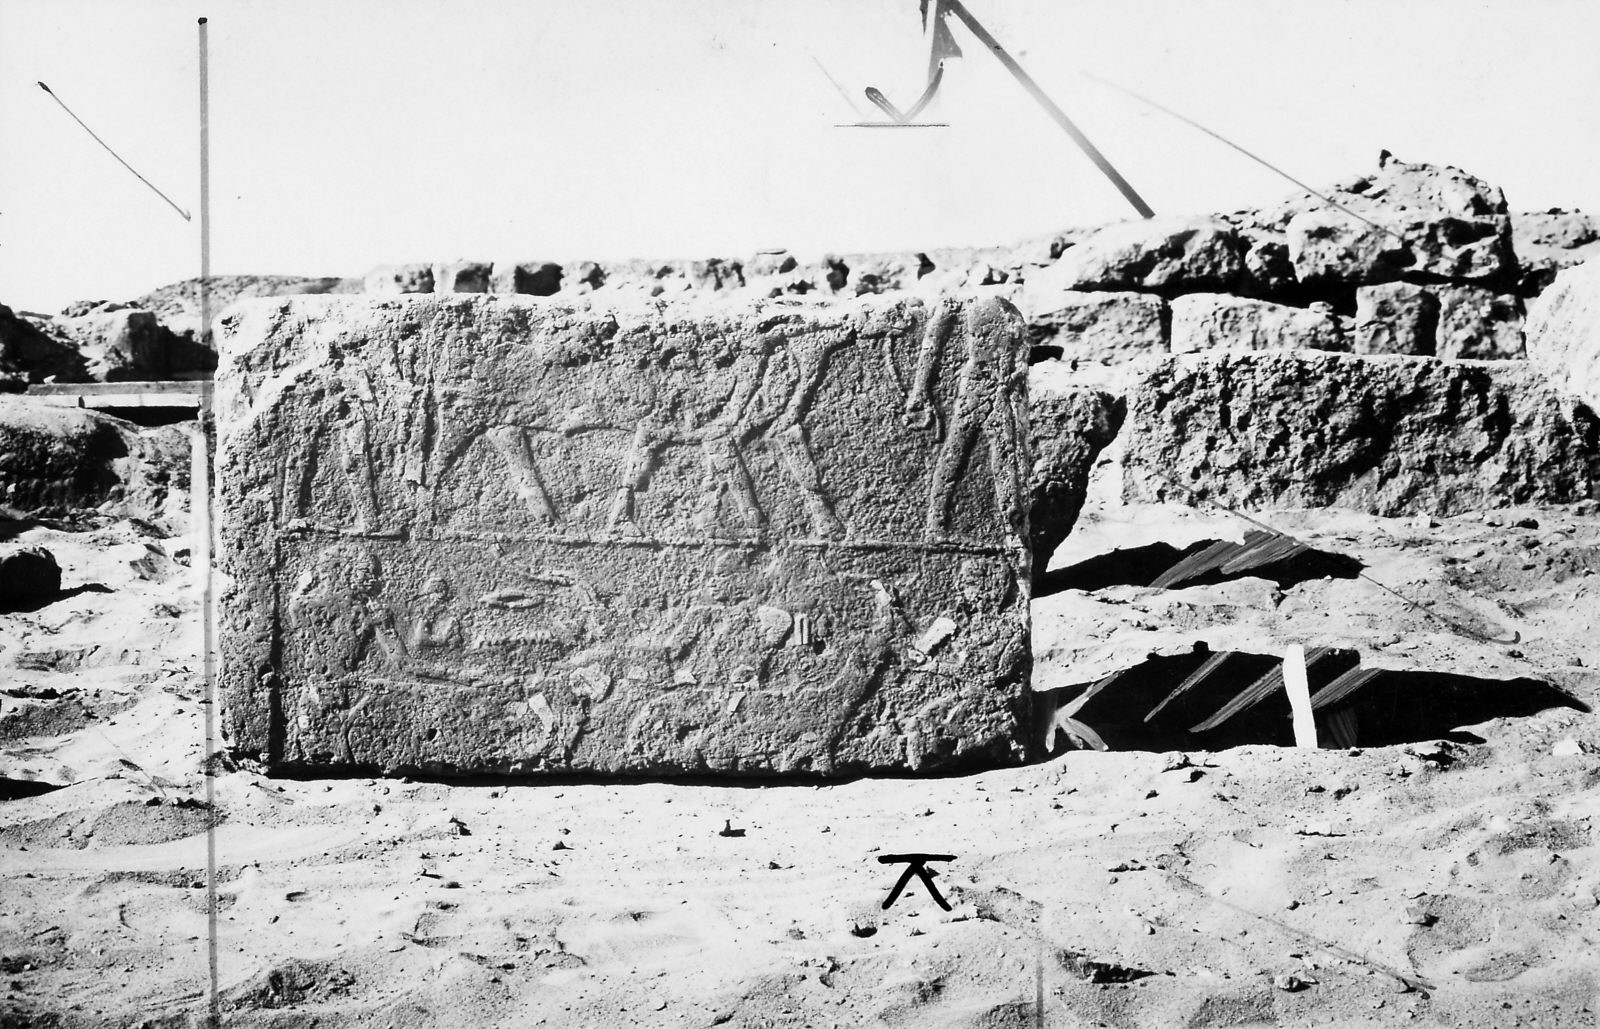 Block of relief from mastaba of Shetwi, chapel, eastern wall, showing livestock procession. Photo ID KHM_AEOS_II_2885, photo and description courtesy of the Giza Archives maintained by Harvard University and the Museum of Fine Arts Boston, online at Digital Giza.